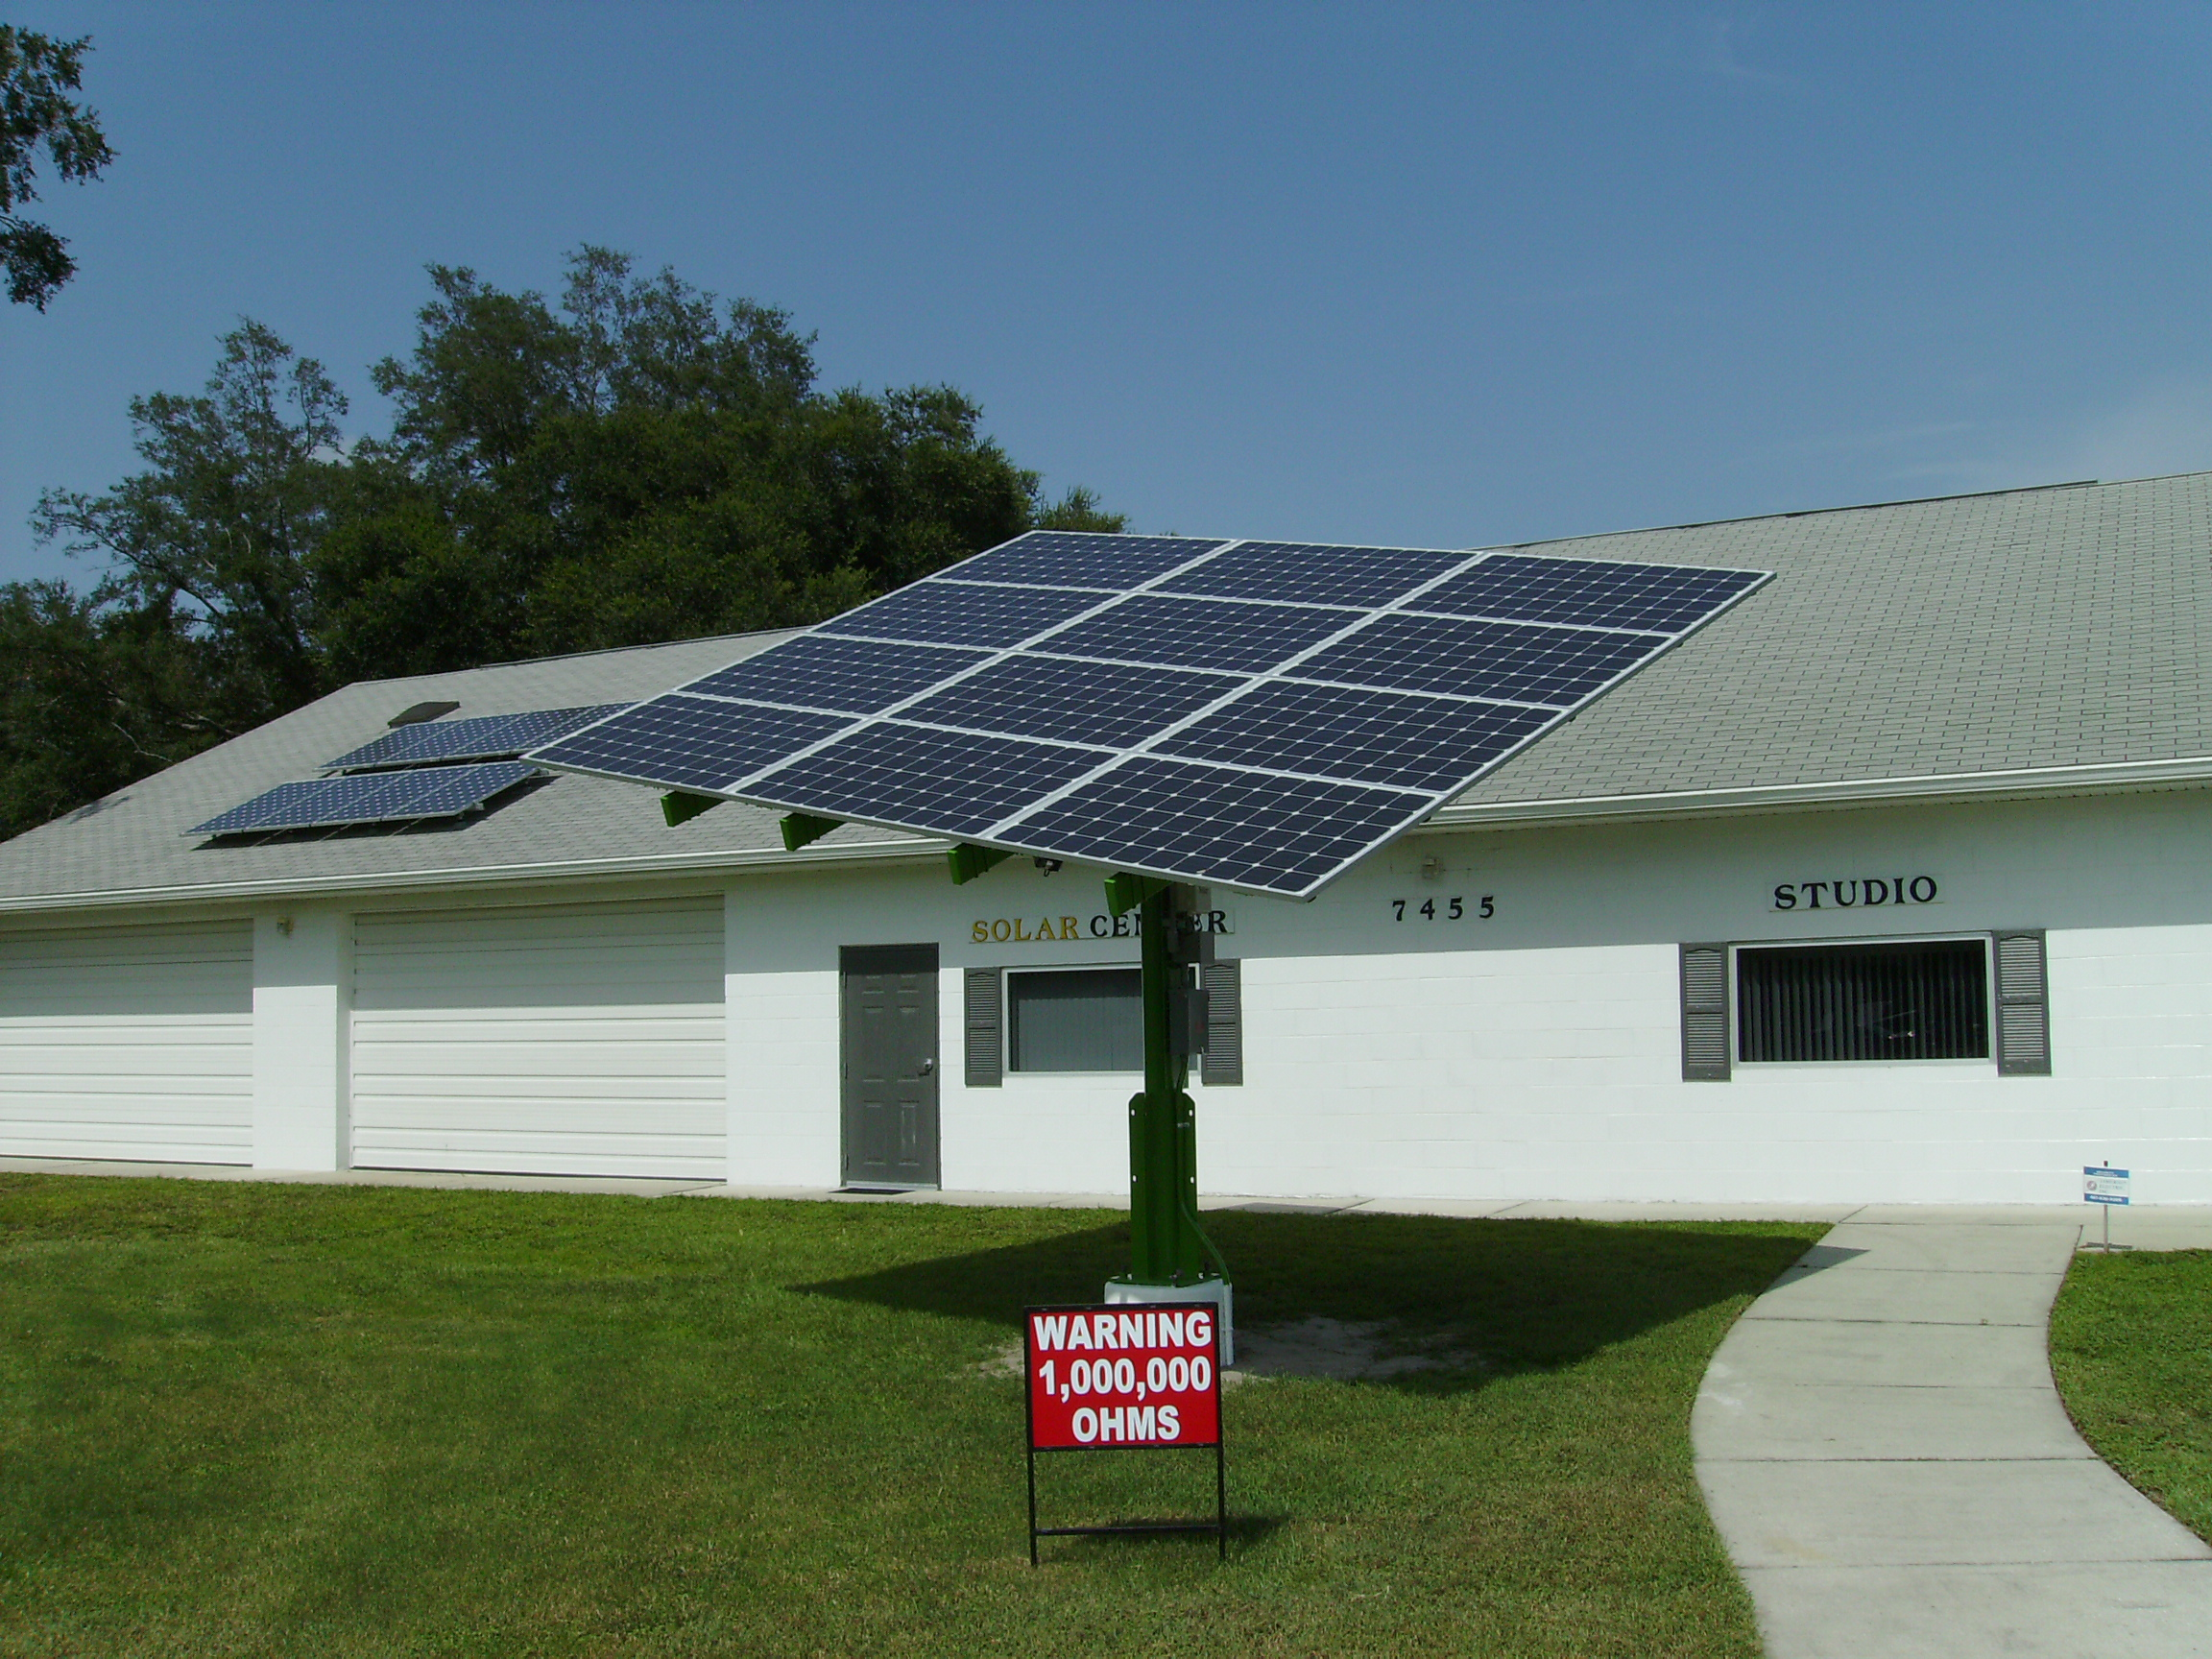 How to install a solar system - Learn The Solar Pv Installation And Enter The Fast Growing Solar Pv Business It S The Future